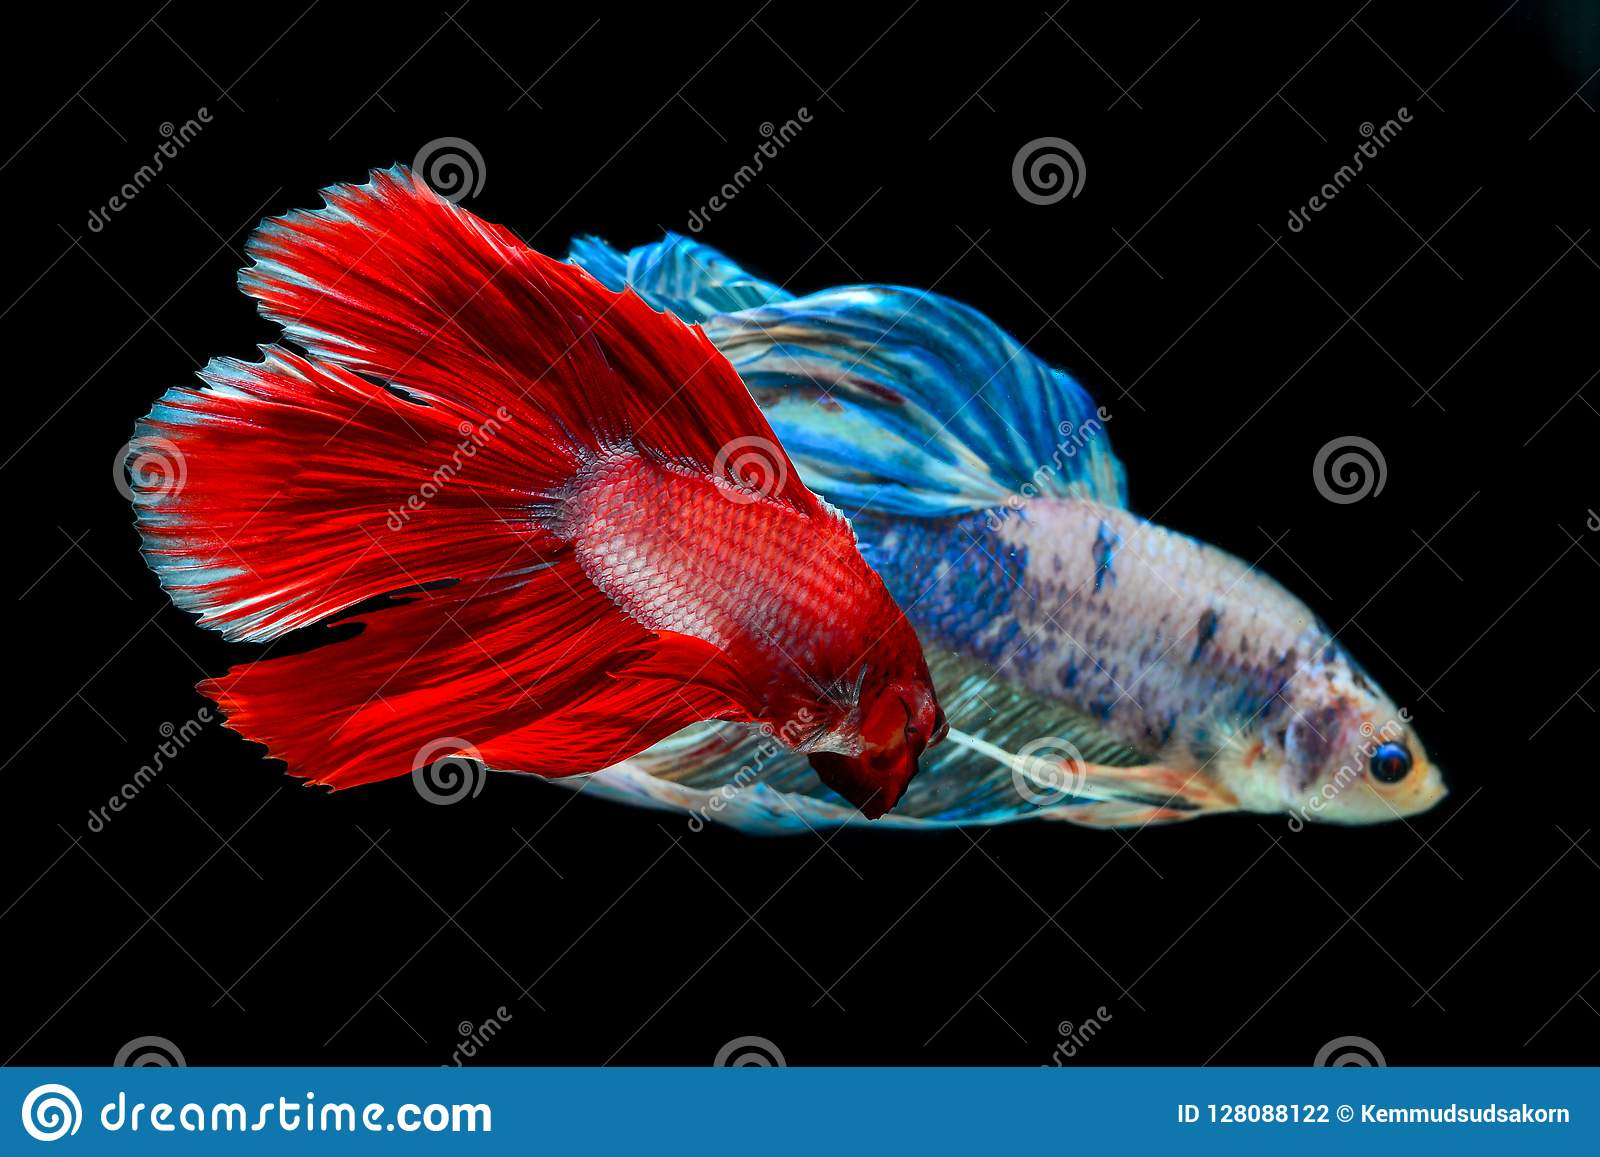 Bite fish with beautiful colors